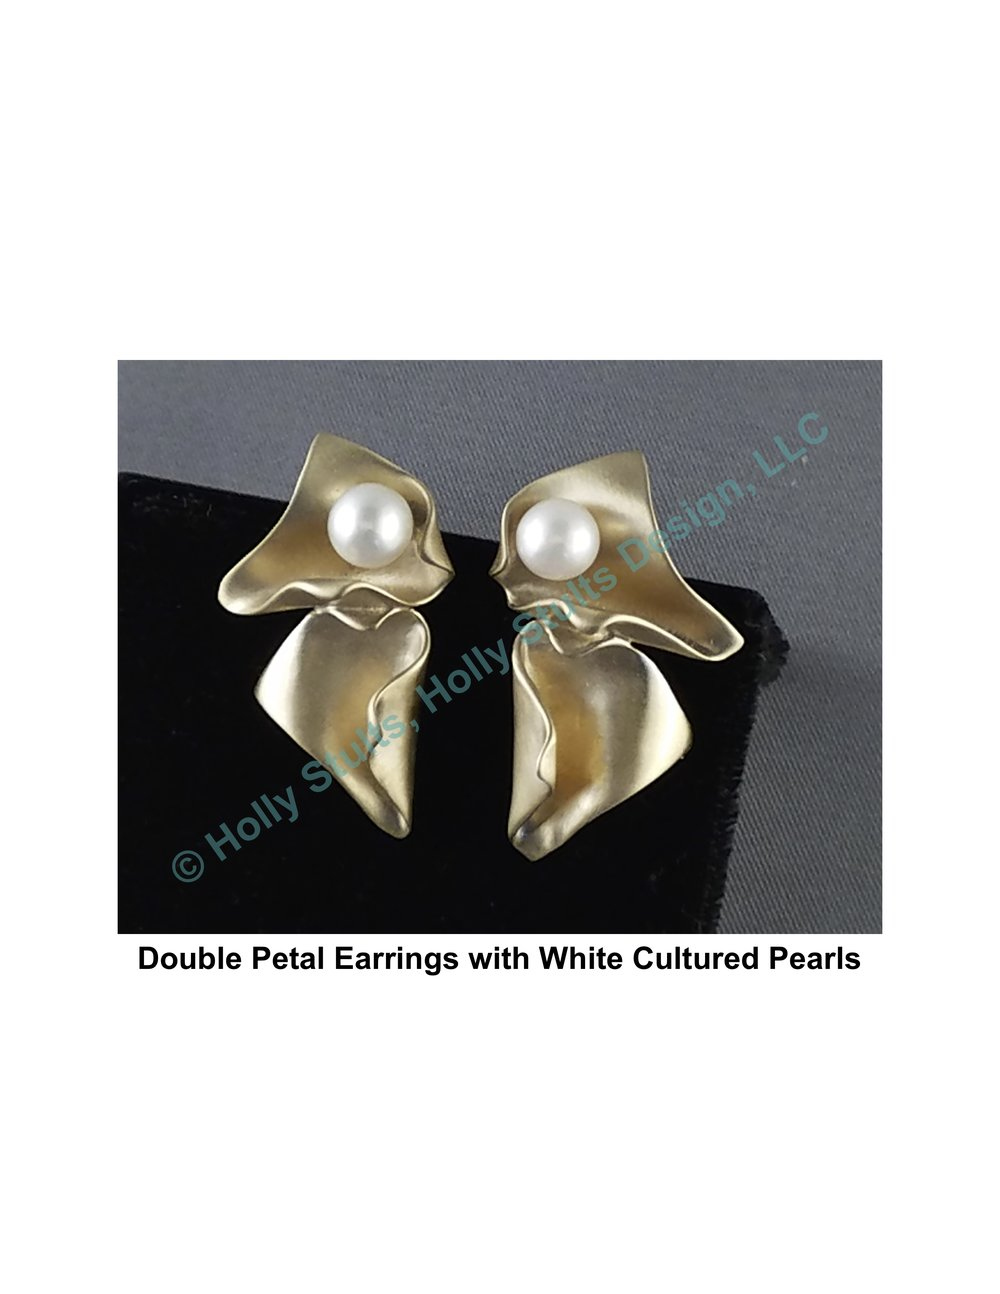 Double Petal Earrings with White Cultured Pearls.jpg